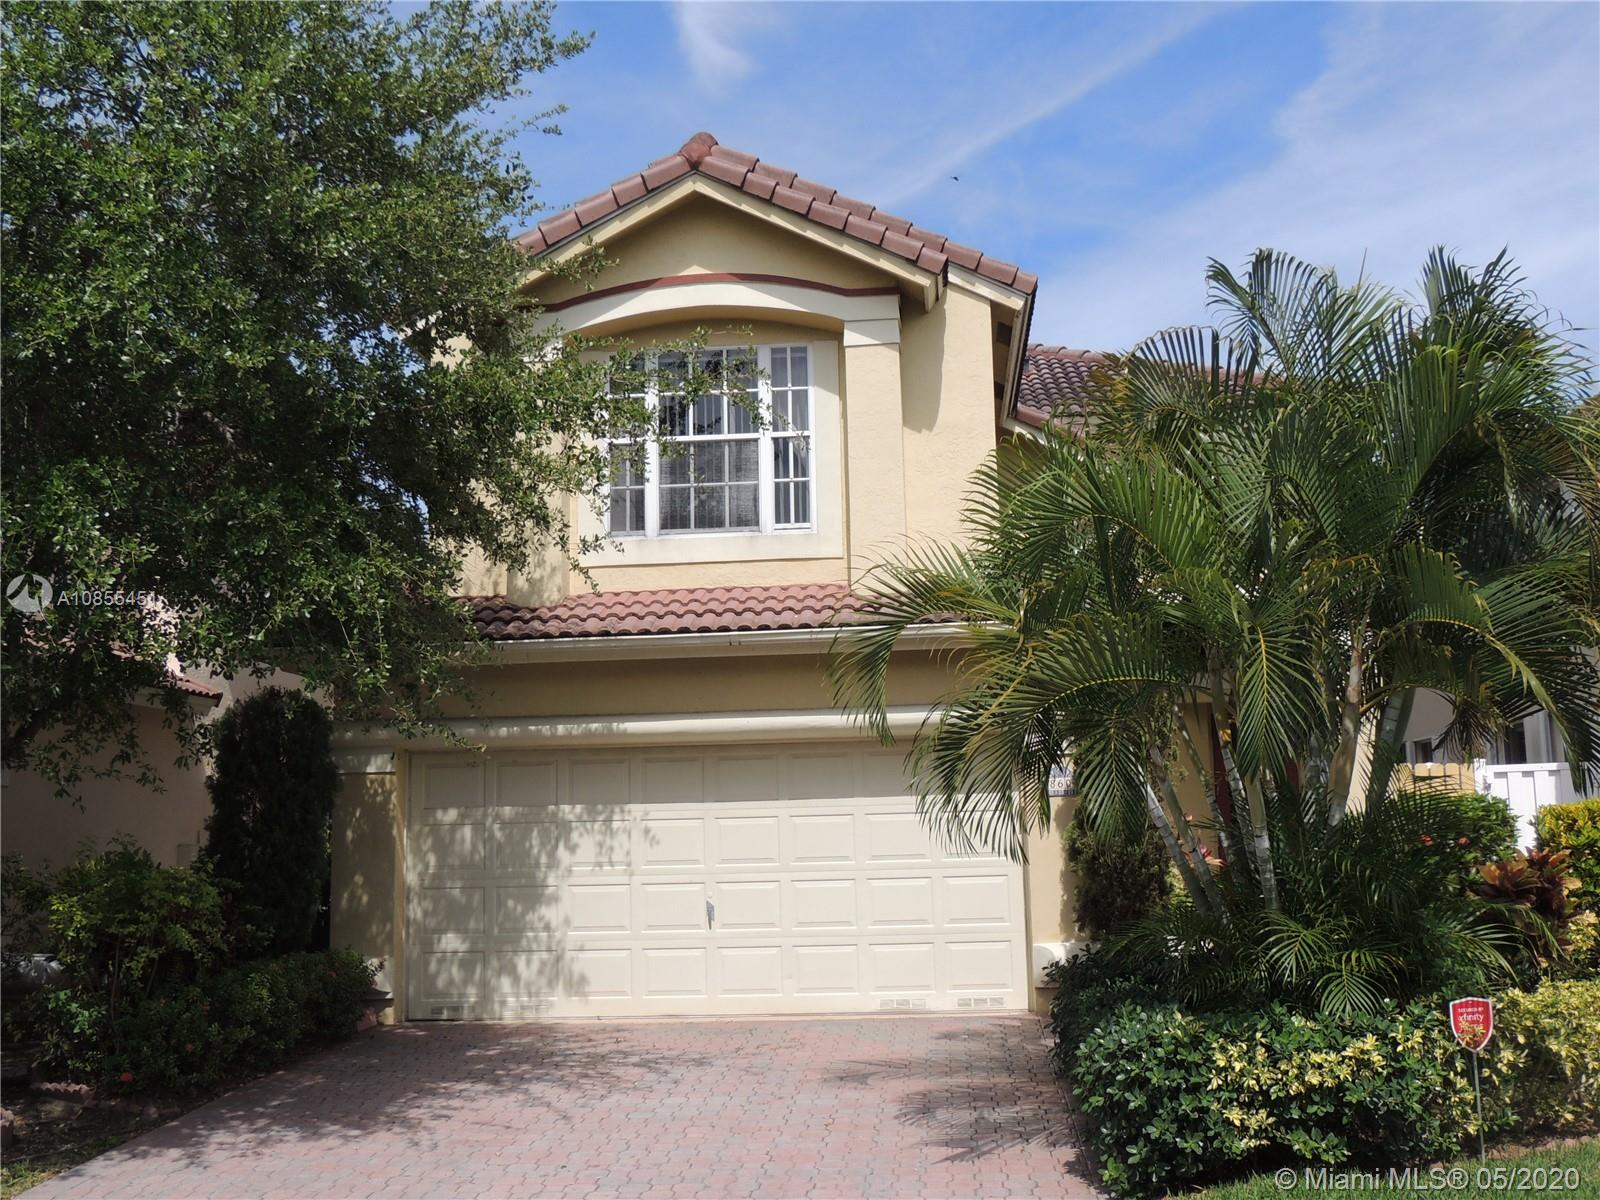 860 Natures Cove RD, Dania Beach, Florida 33004, 4 Bedrooms Bedrooms, ,3 BathroomsBathrooms,Residential,For Sale,860 Natures Cove RD,A10855451